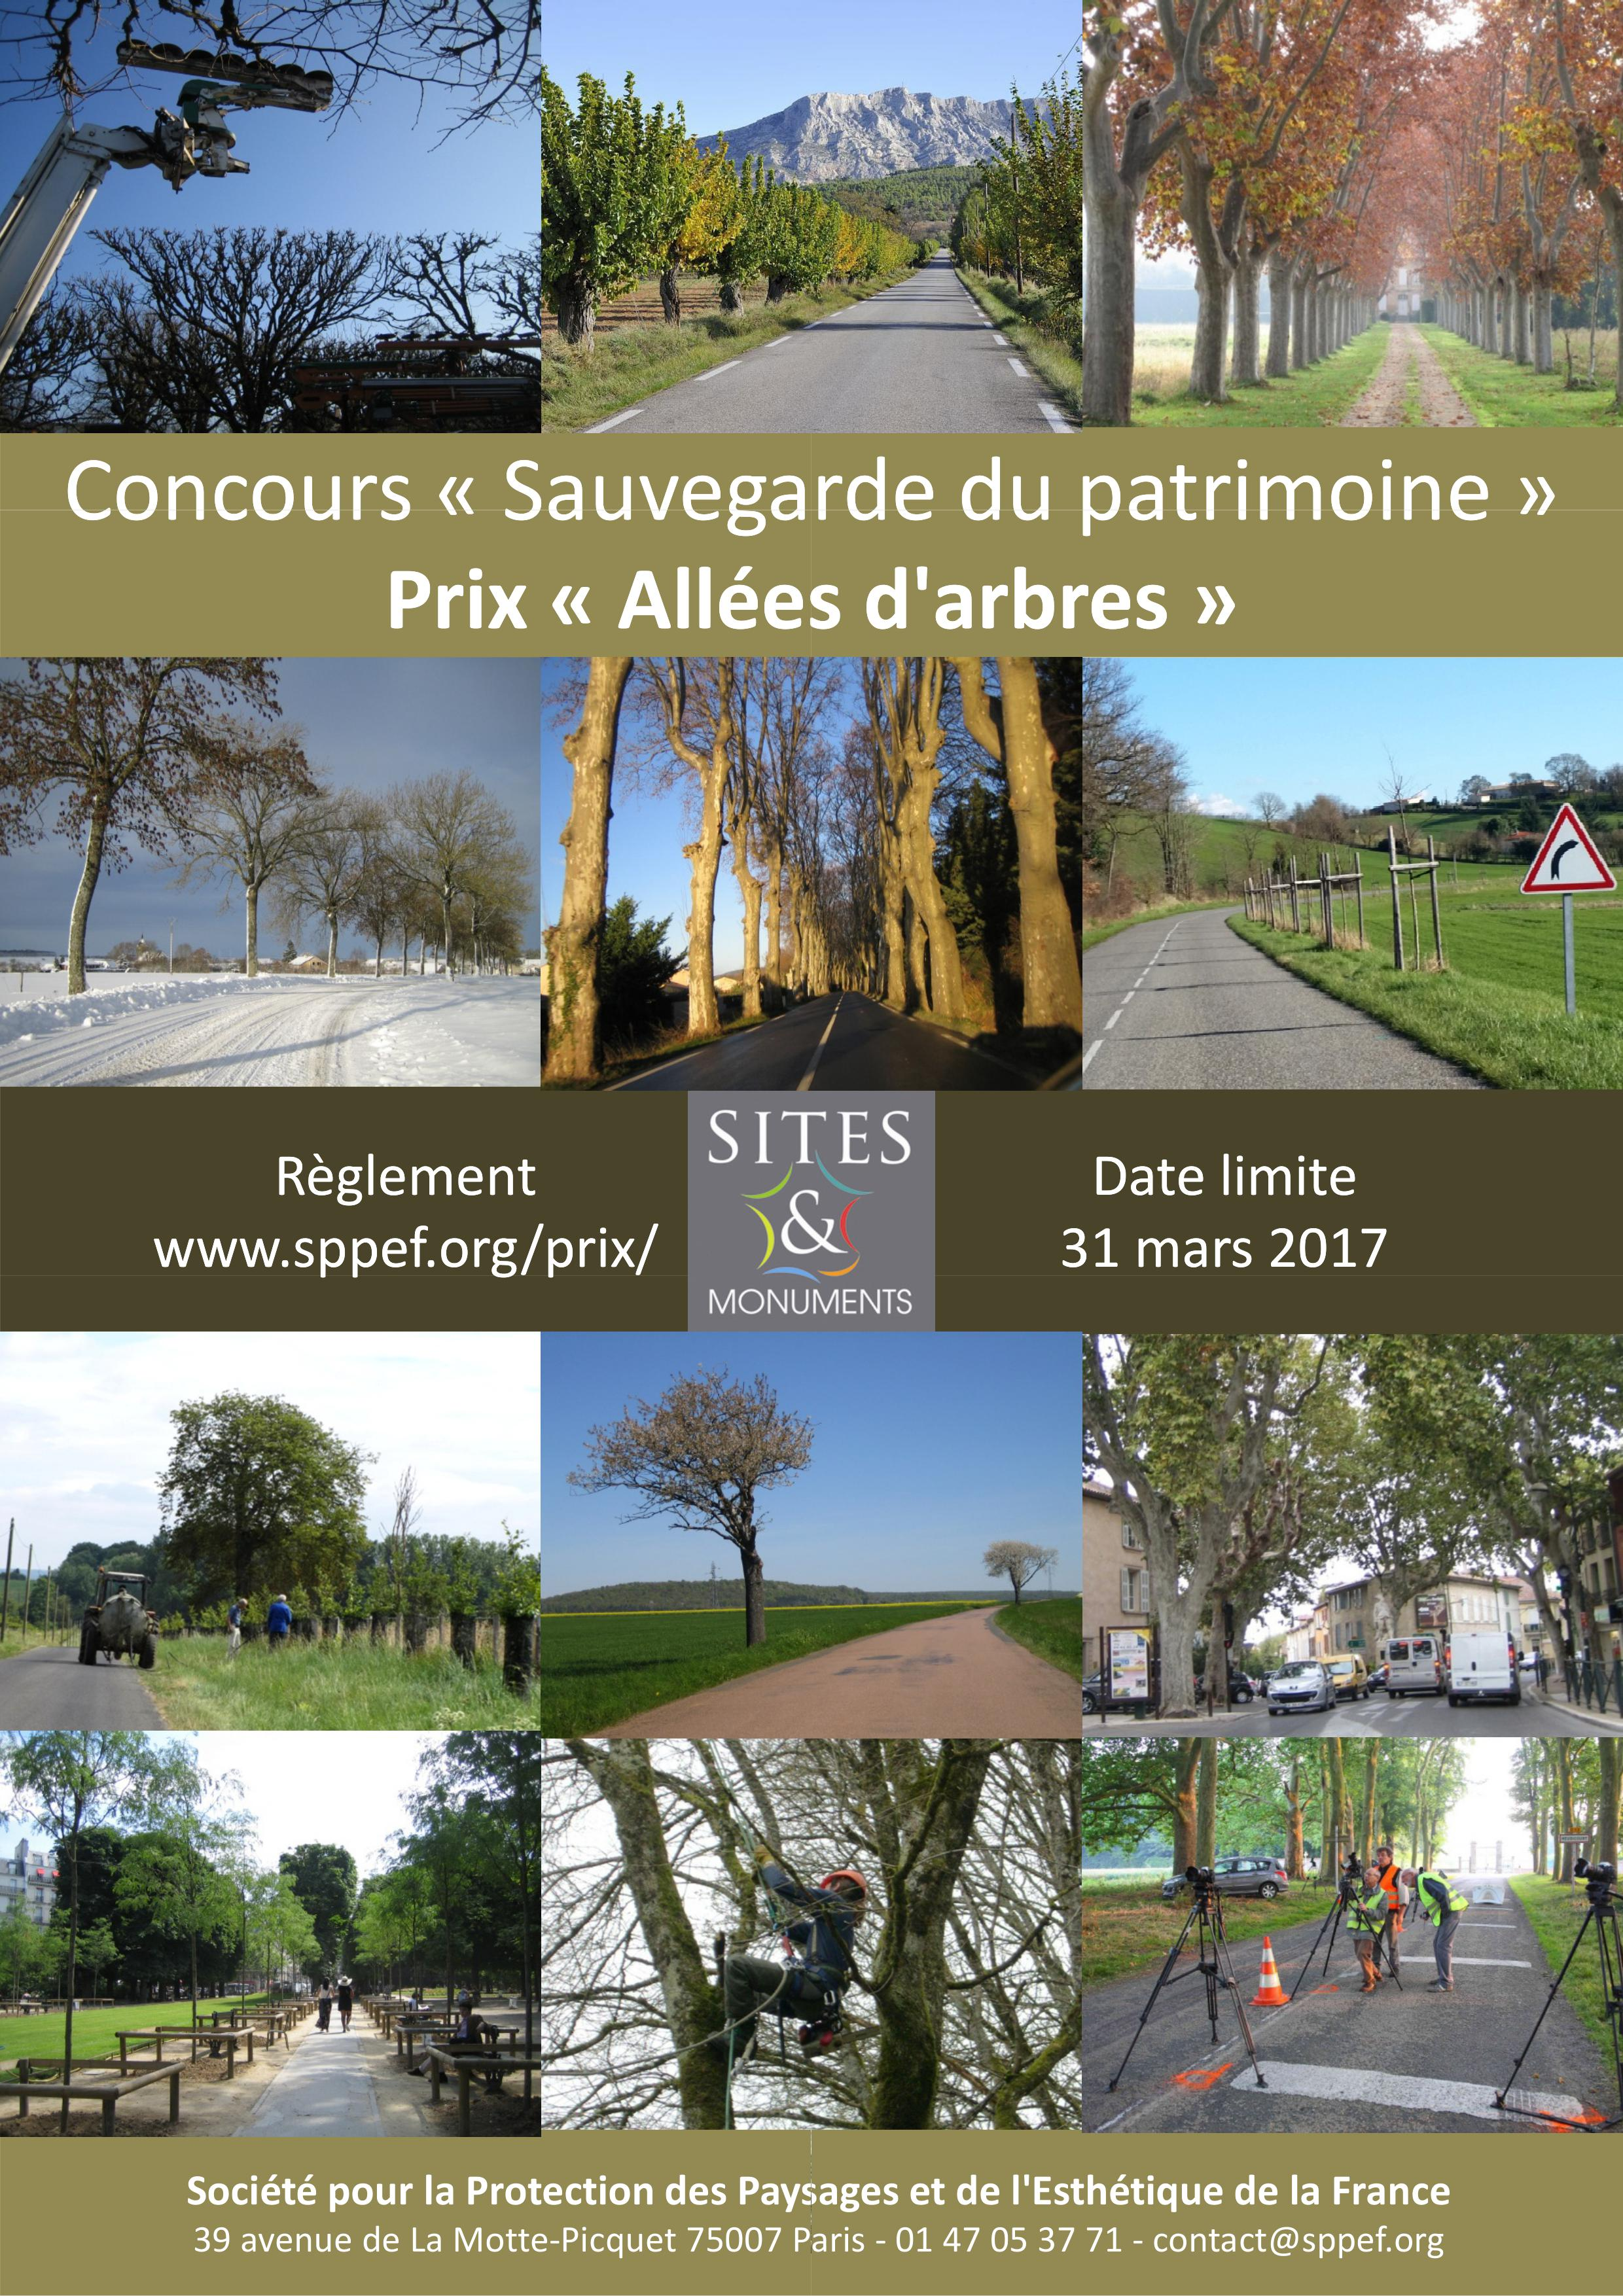 sppef_affiche-concours-allees-darbres-2017